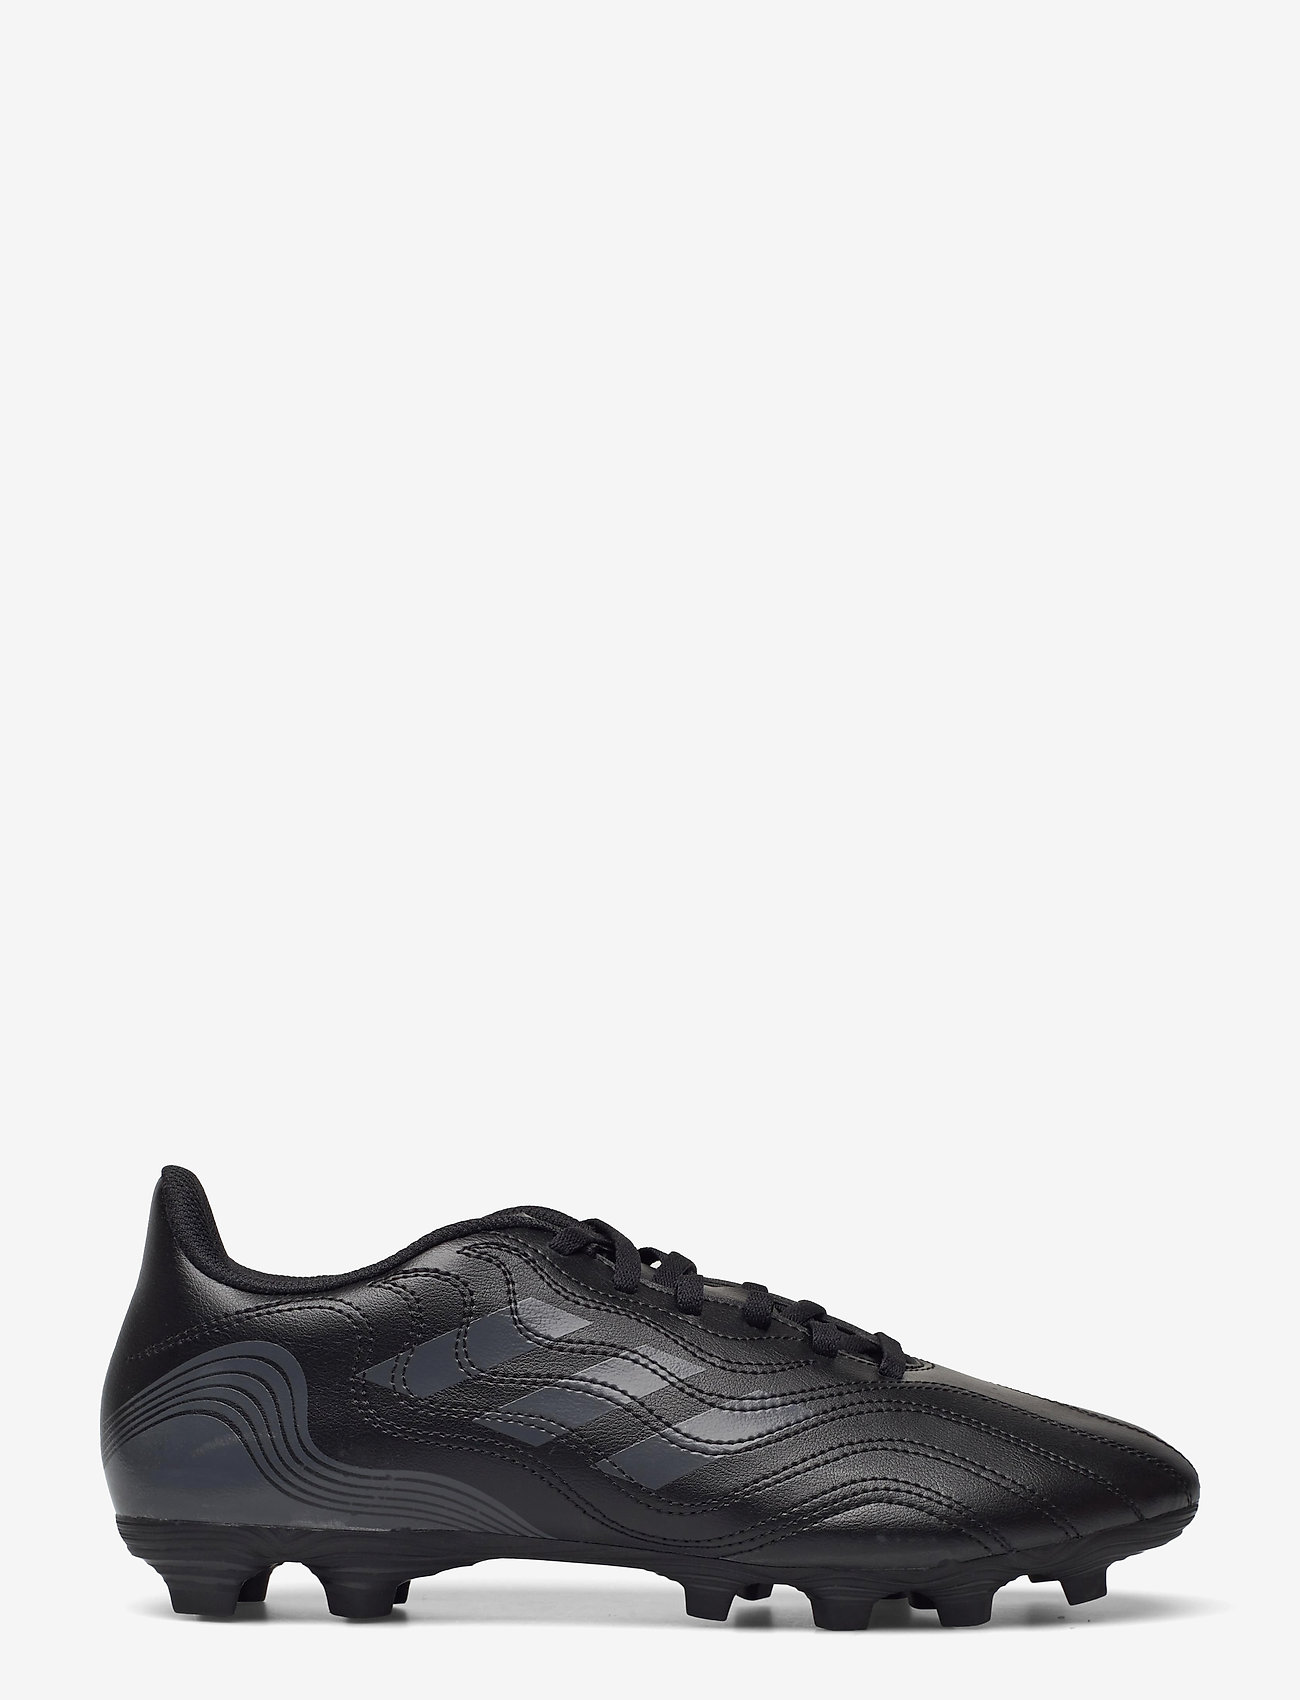 adidas Performance - Copa Sense.4 Flexible Ground Boots - fodboldsko - cblack/gresix/cblack - 1